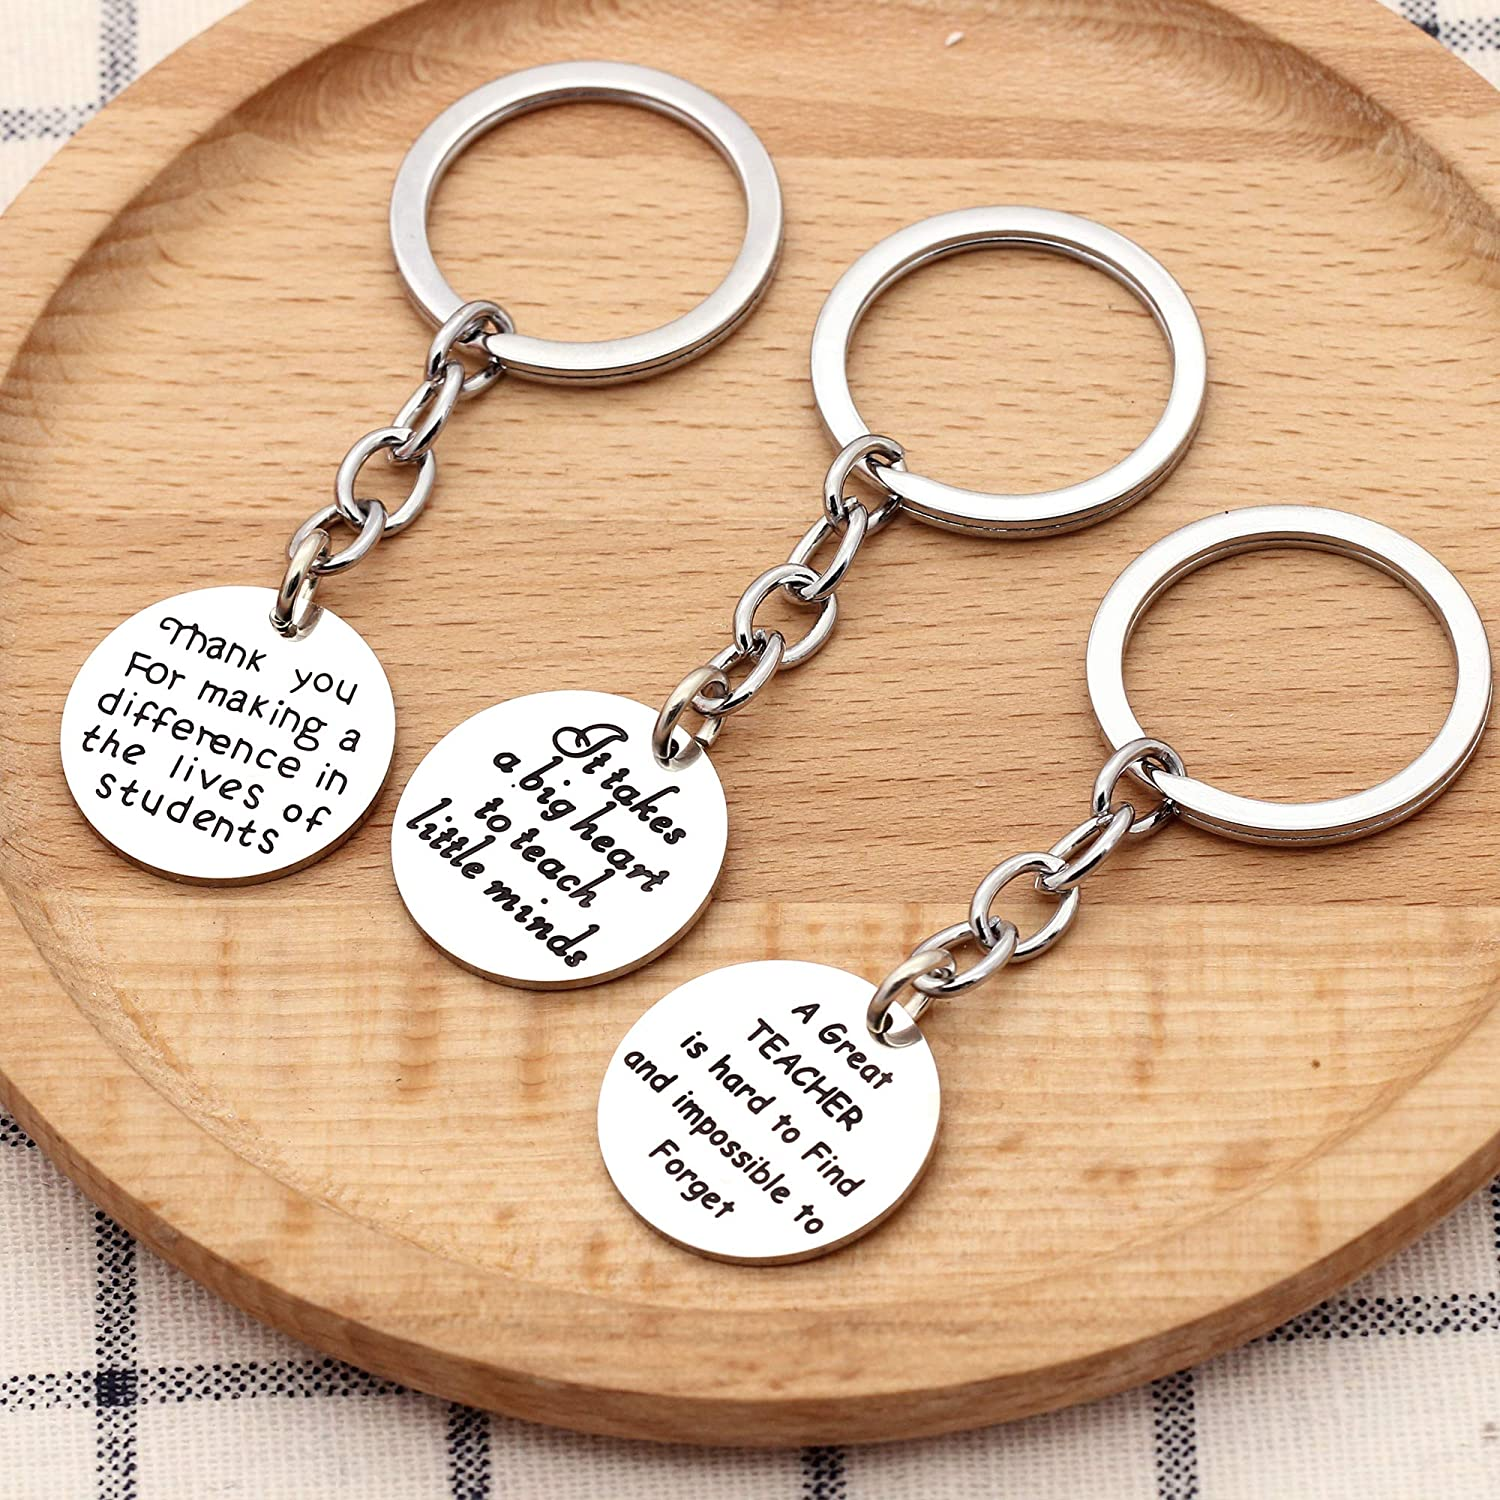 KENYG 3PCS//Set Silver Stainless Steel Round Shape Pendant Key Ring Key Chain for Teachers Mother Father Gifts